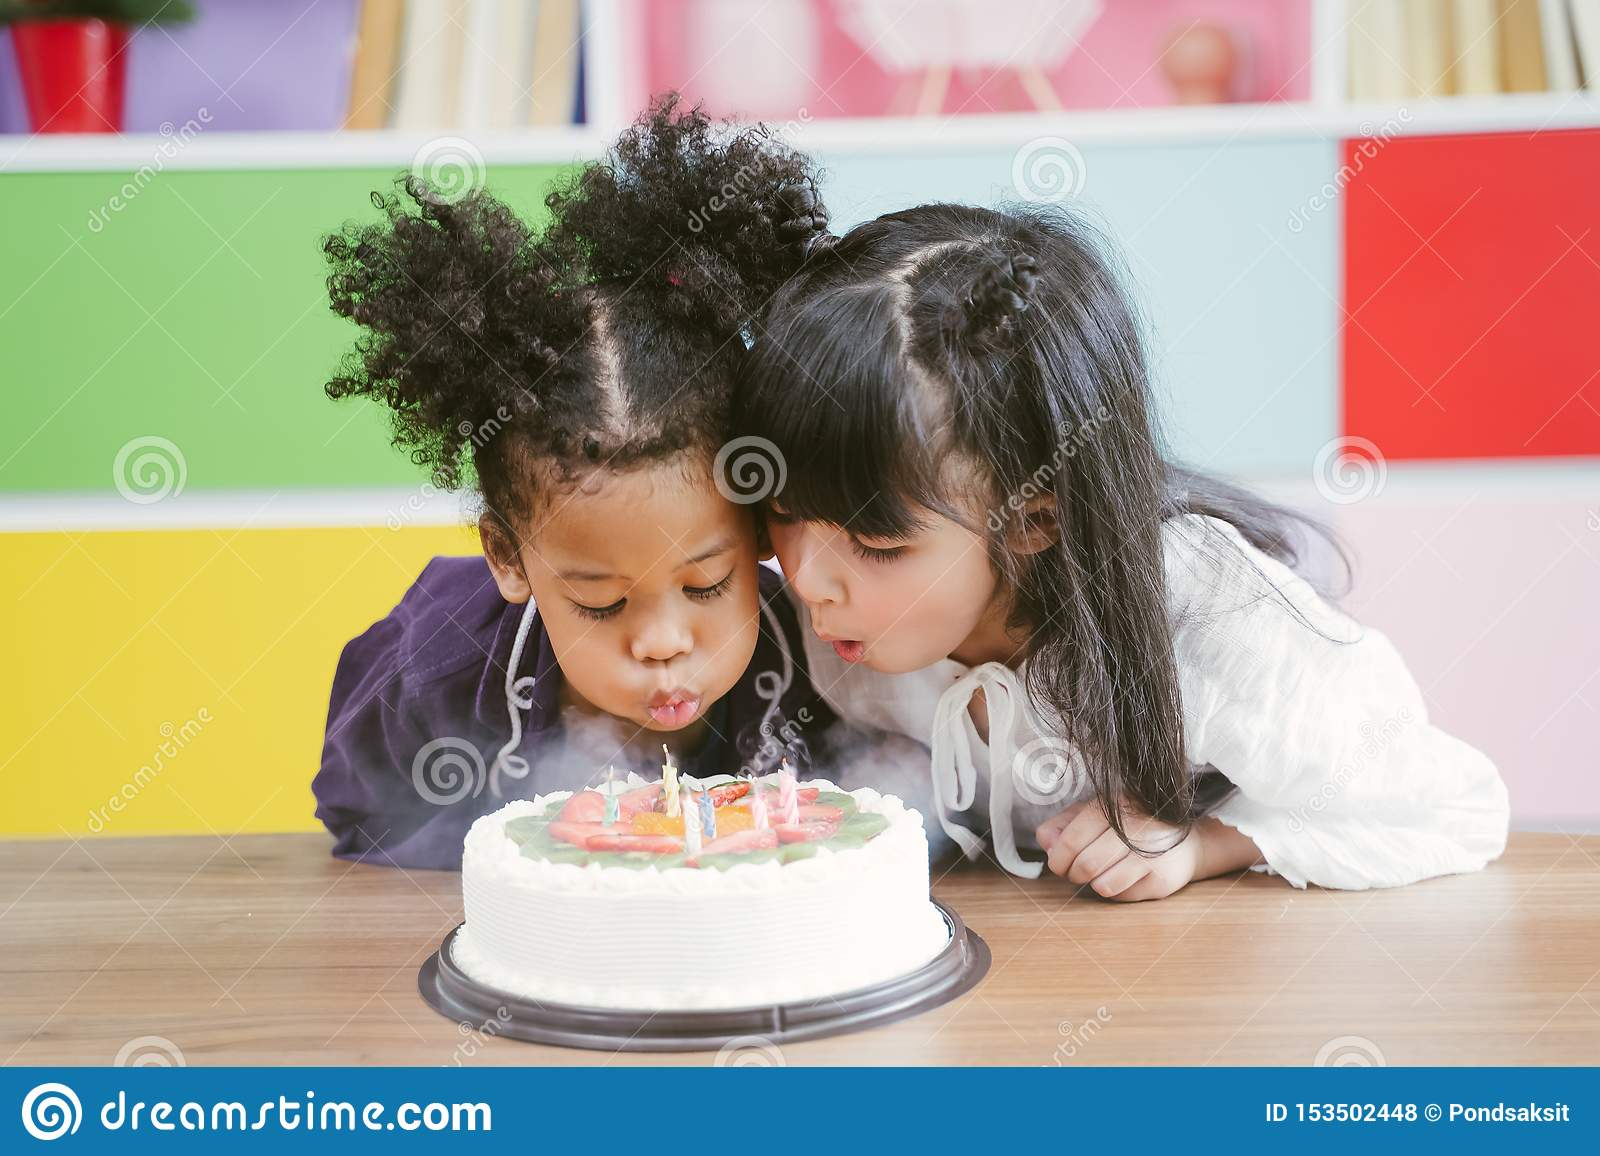 Kids enjoying a birthday party blowing out the candle on cake.